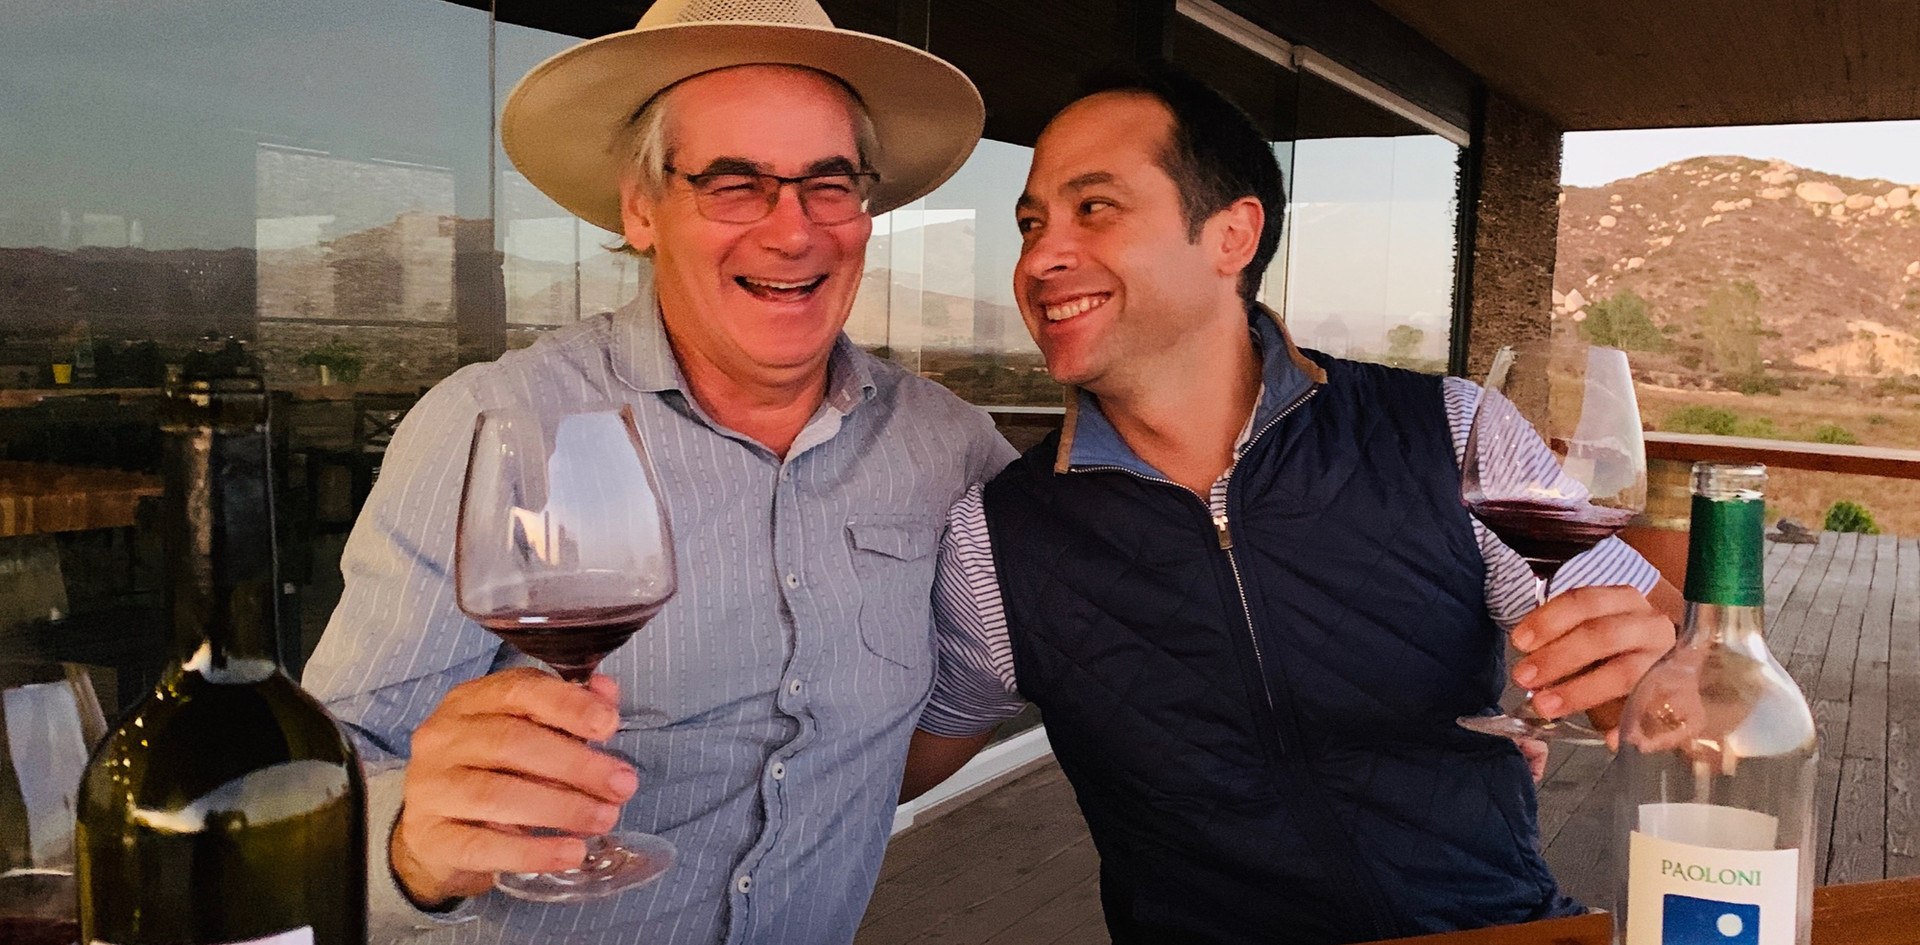 Paolo Paoloni of Paoloni with Patrick Neri from Beso Imports at the Paloni estate in Valle de Guadalupe where friendship and business are one in the same.